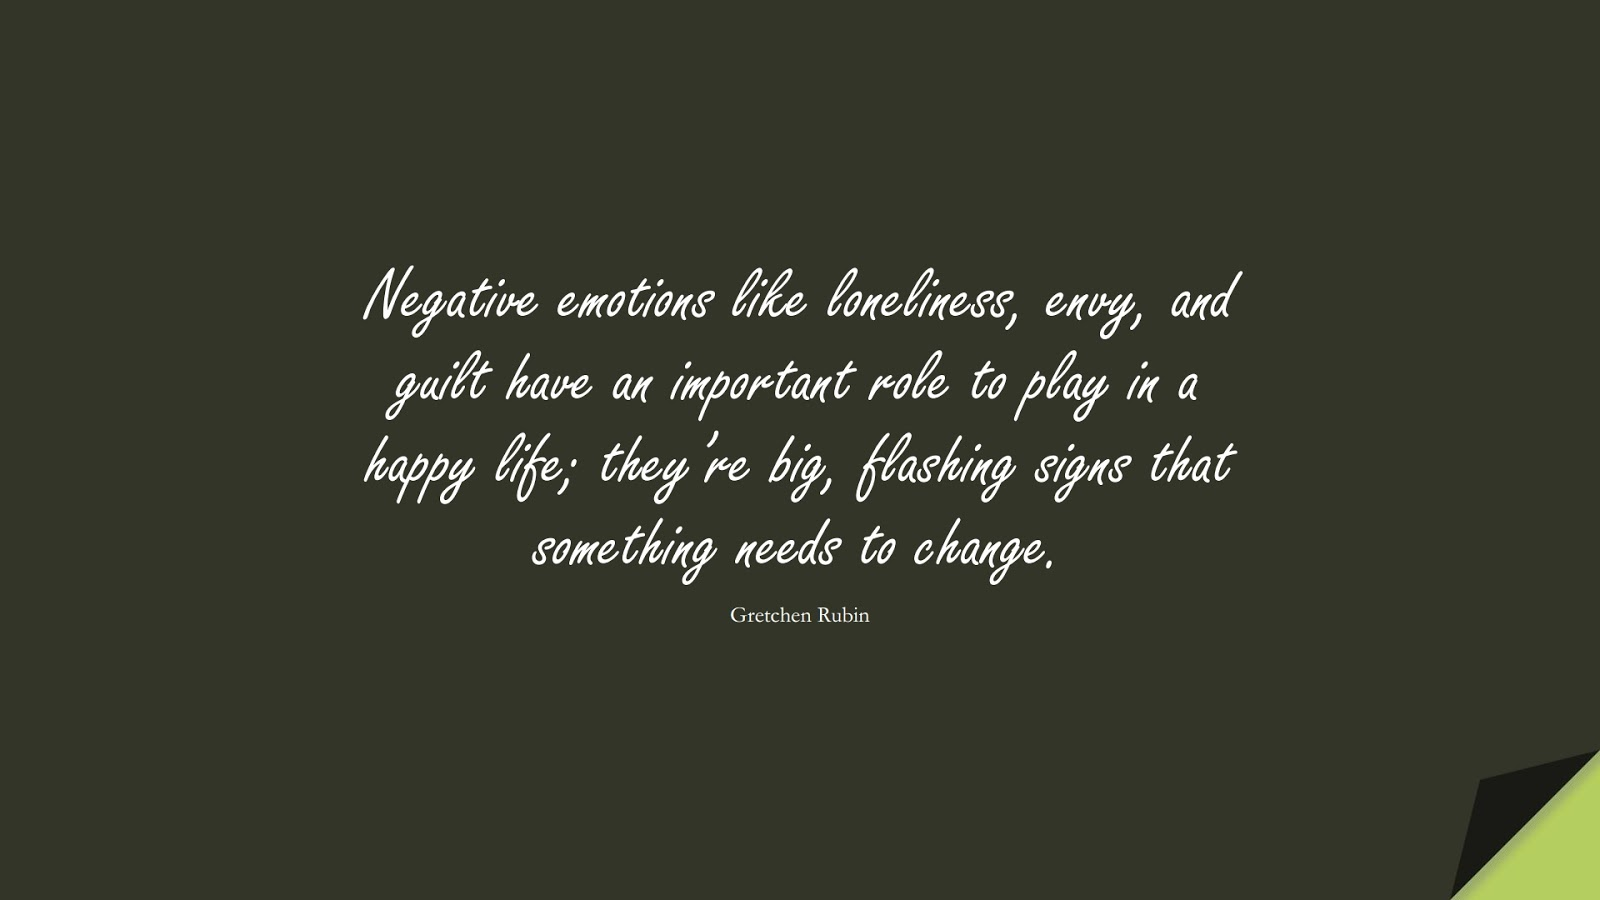 Negative emotions like loneliness, envy, and guilt have an important role to play in a happy life; they're big, flashing signs that something needs to change. (Gretchen Rubin);  #ChangeQuotes